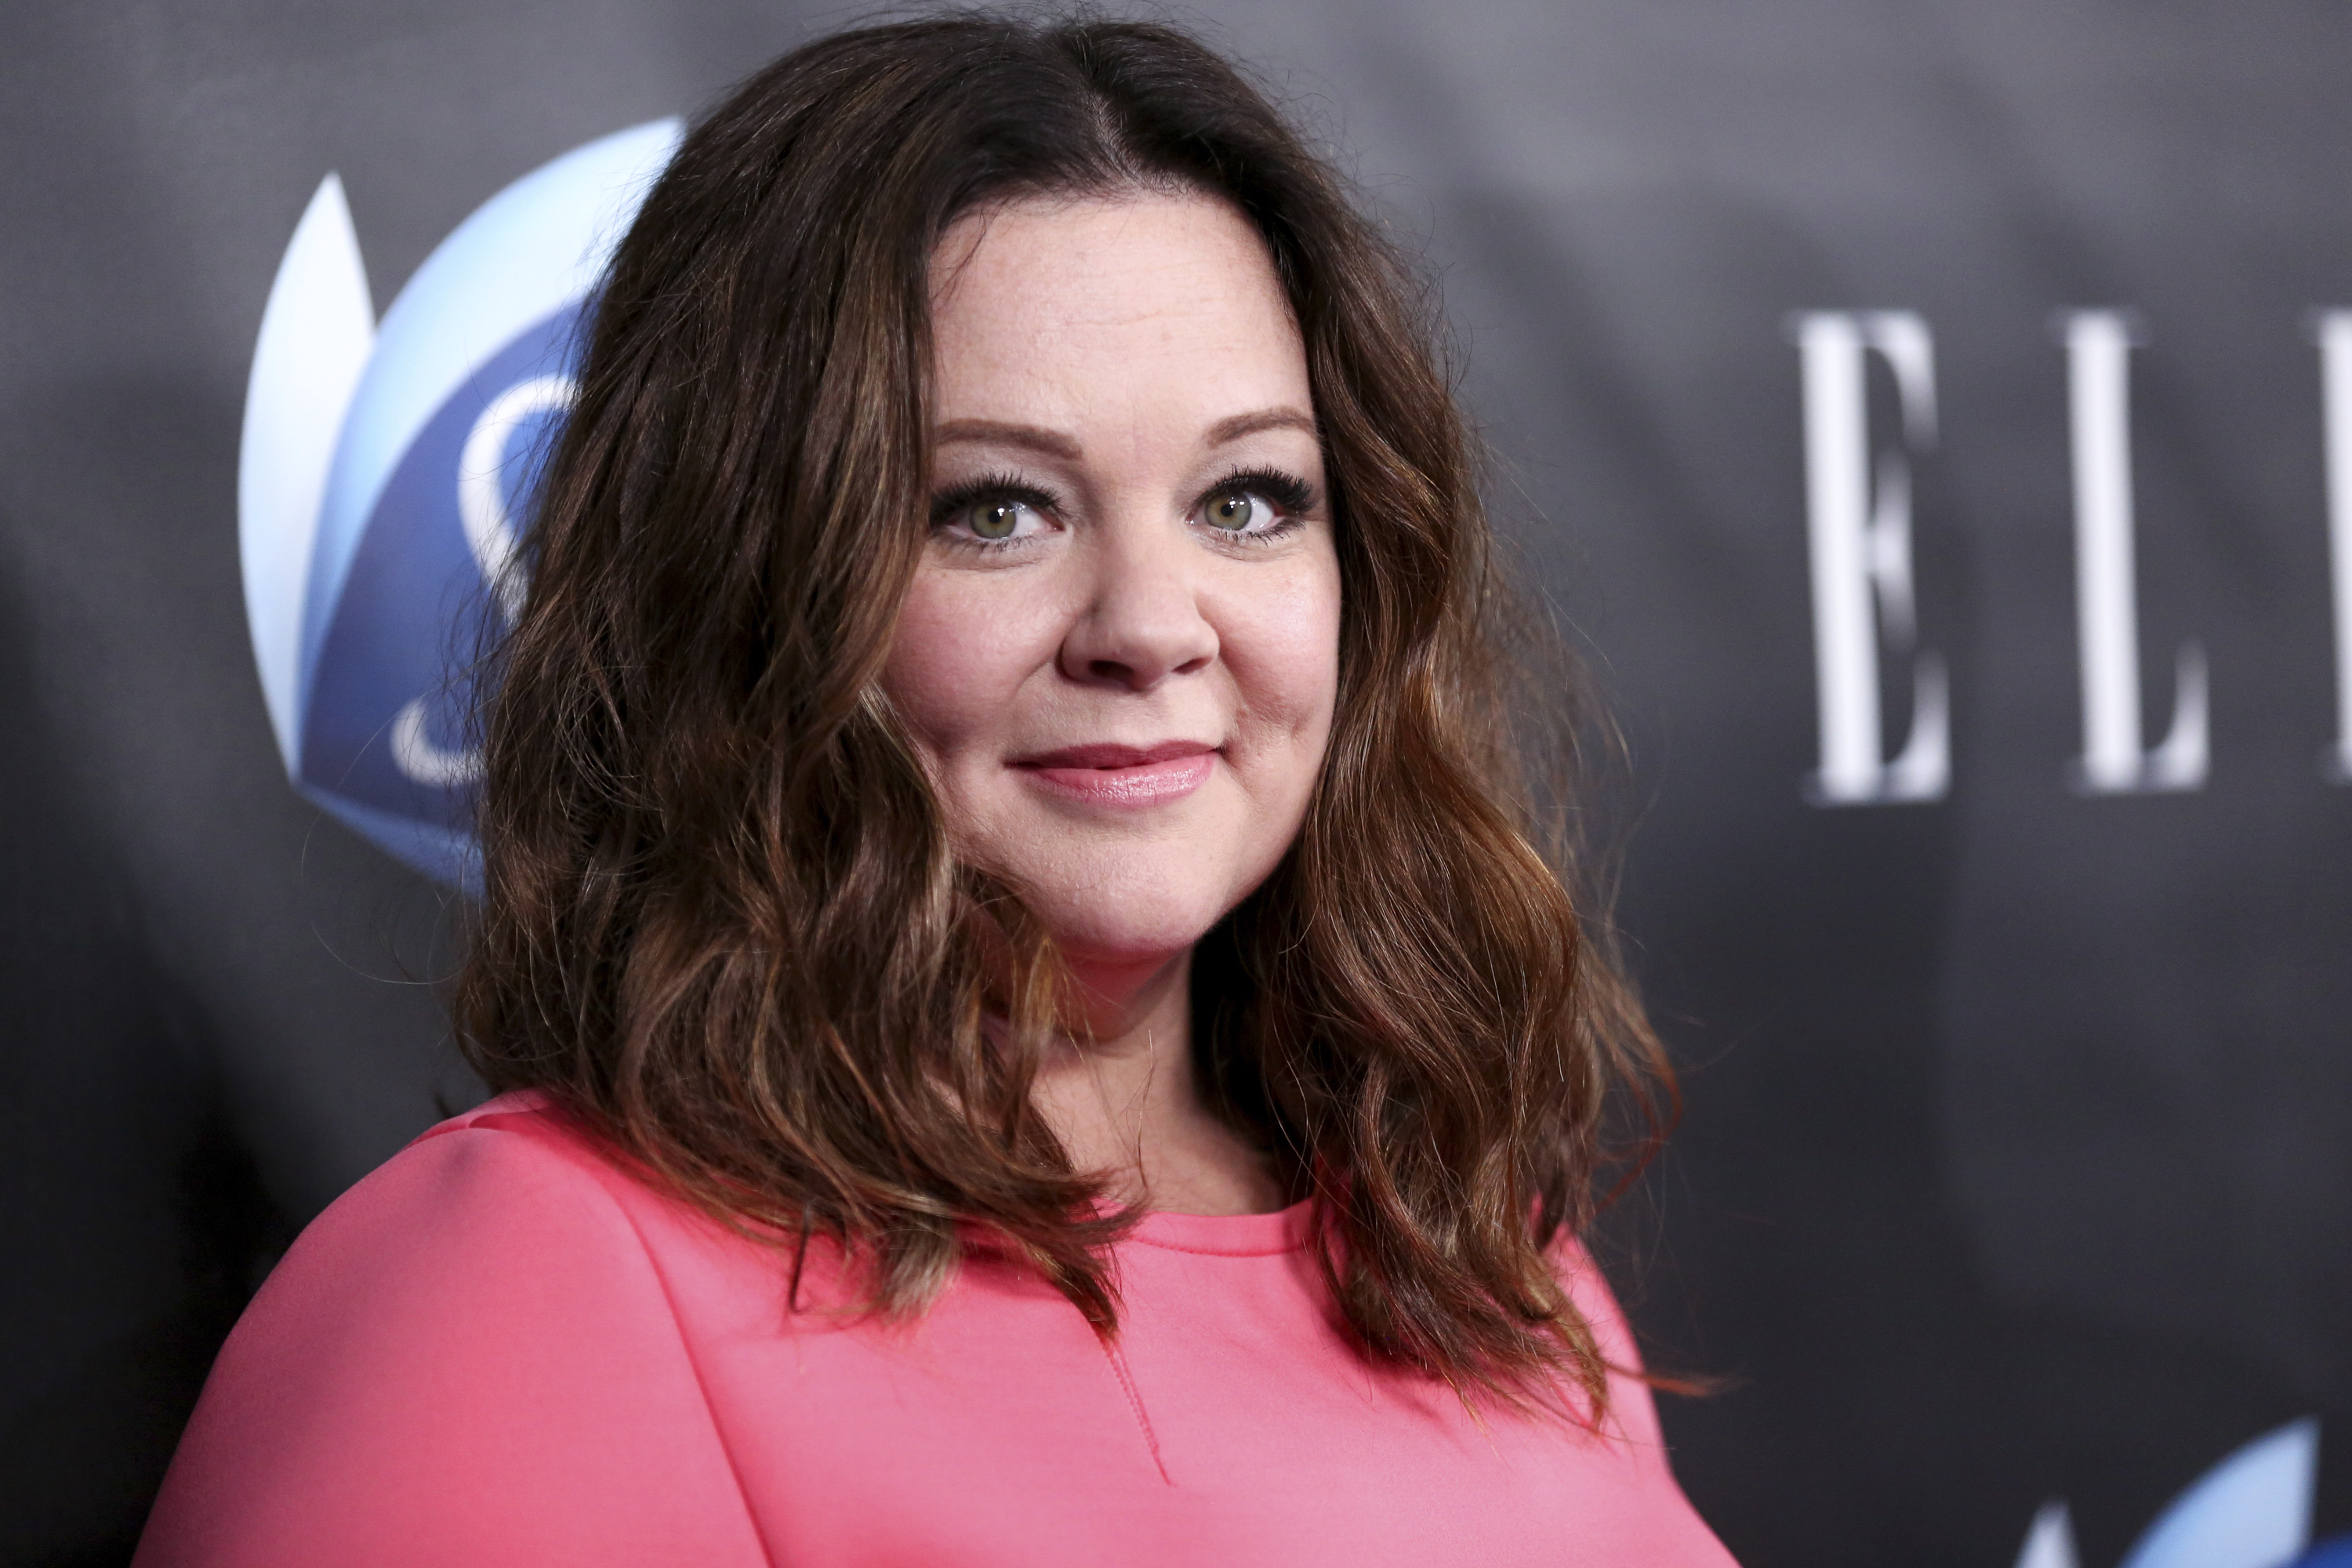 "FILE - In this Tuesday, June 7, 2016 file photo, Melissa McCarthy arrives at the ELLE Women in Comedy Event at Hyde Sunset in Los Angeles. McCarthy once again brought comic spice plus Spicer to ""Saturday Night Live.""                  After a spate of guest appearances mocking White House press secretary Sean Spicer in recent weeks, she was back on Saturday's edition, May 13, 2017, of the NBC satire show to preside as host. (Photo by Rich Fury/Invision/AP, File)"